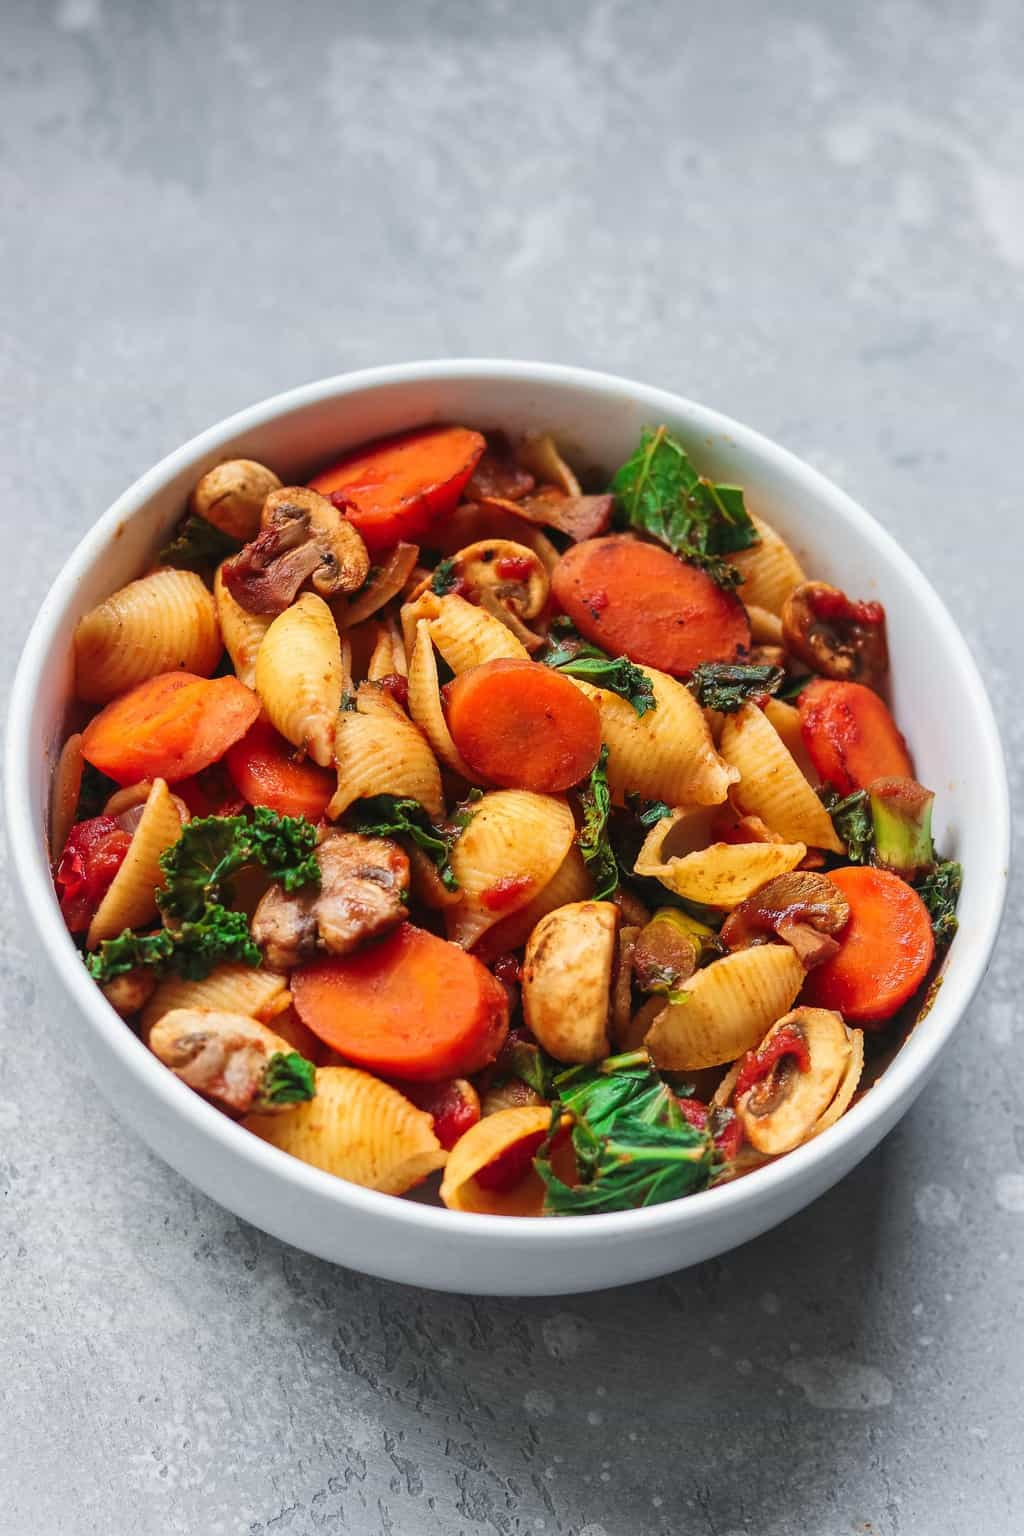 Pasta bowl with vegetables